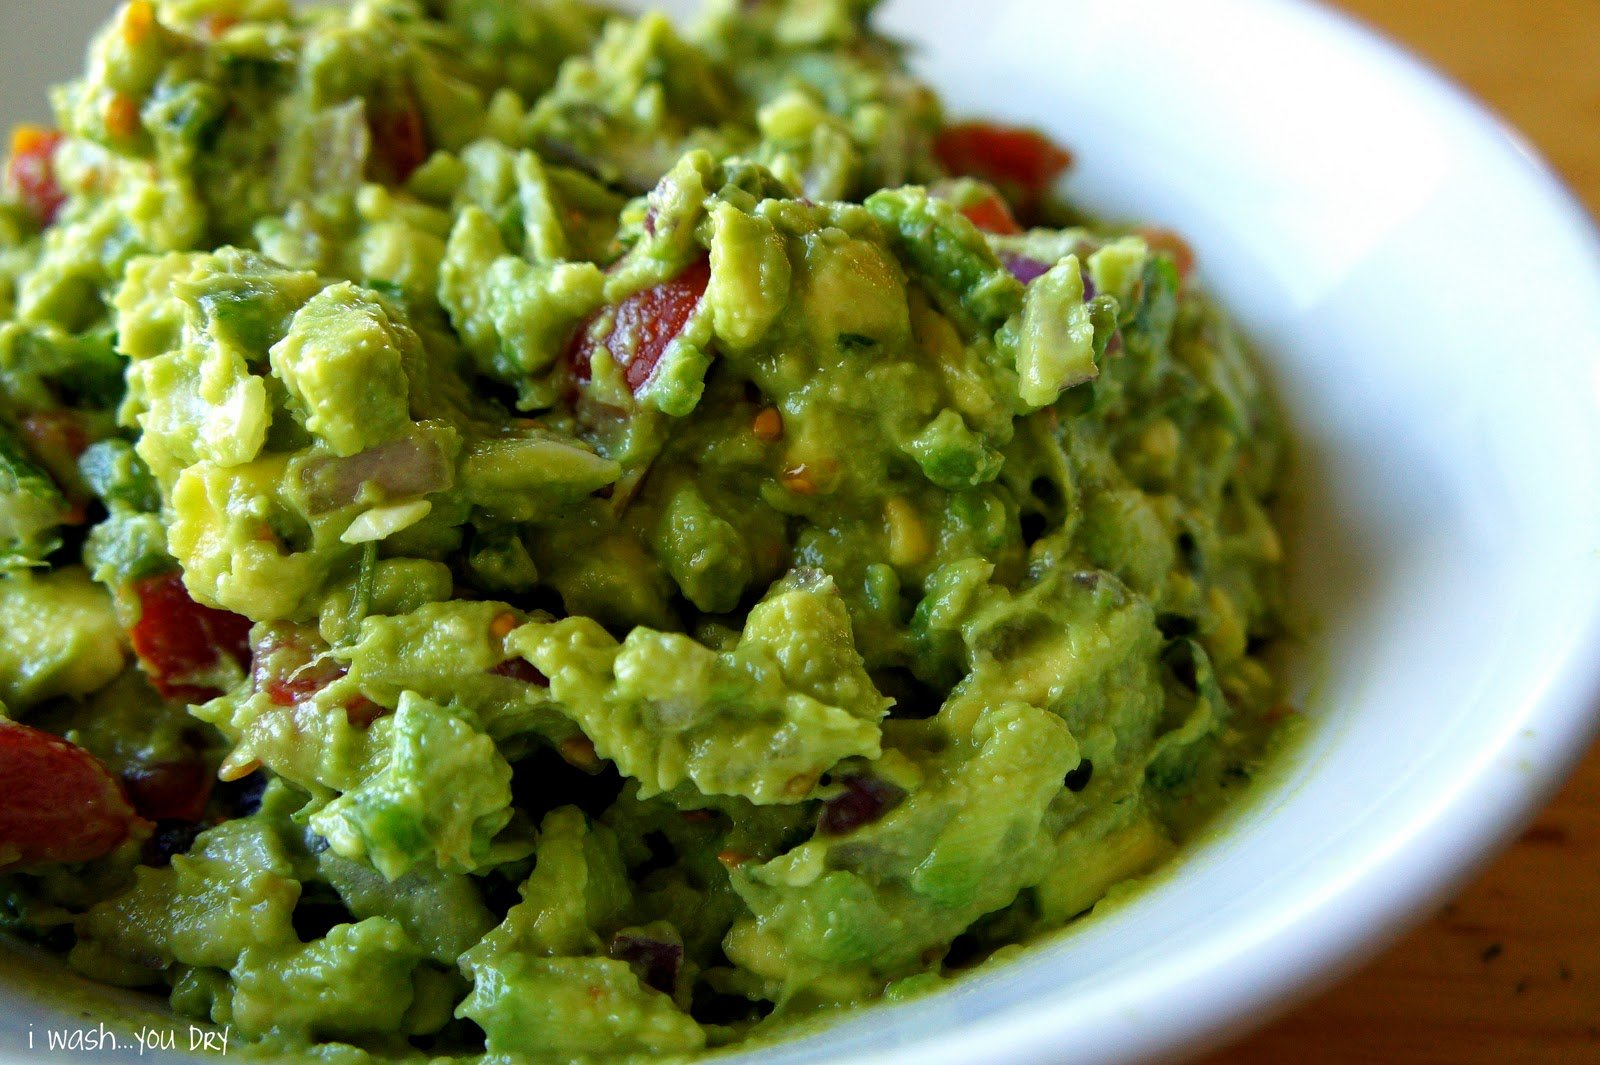 Fresh Guacamole - I Wash... You Dry